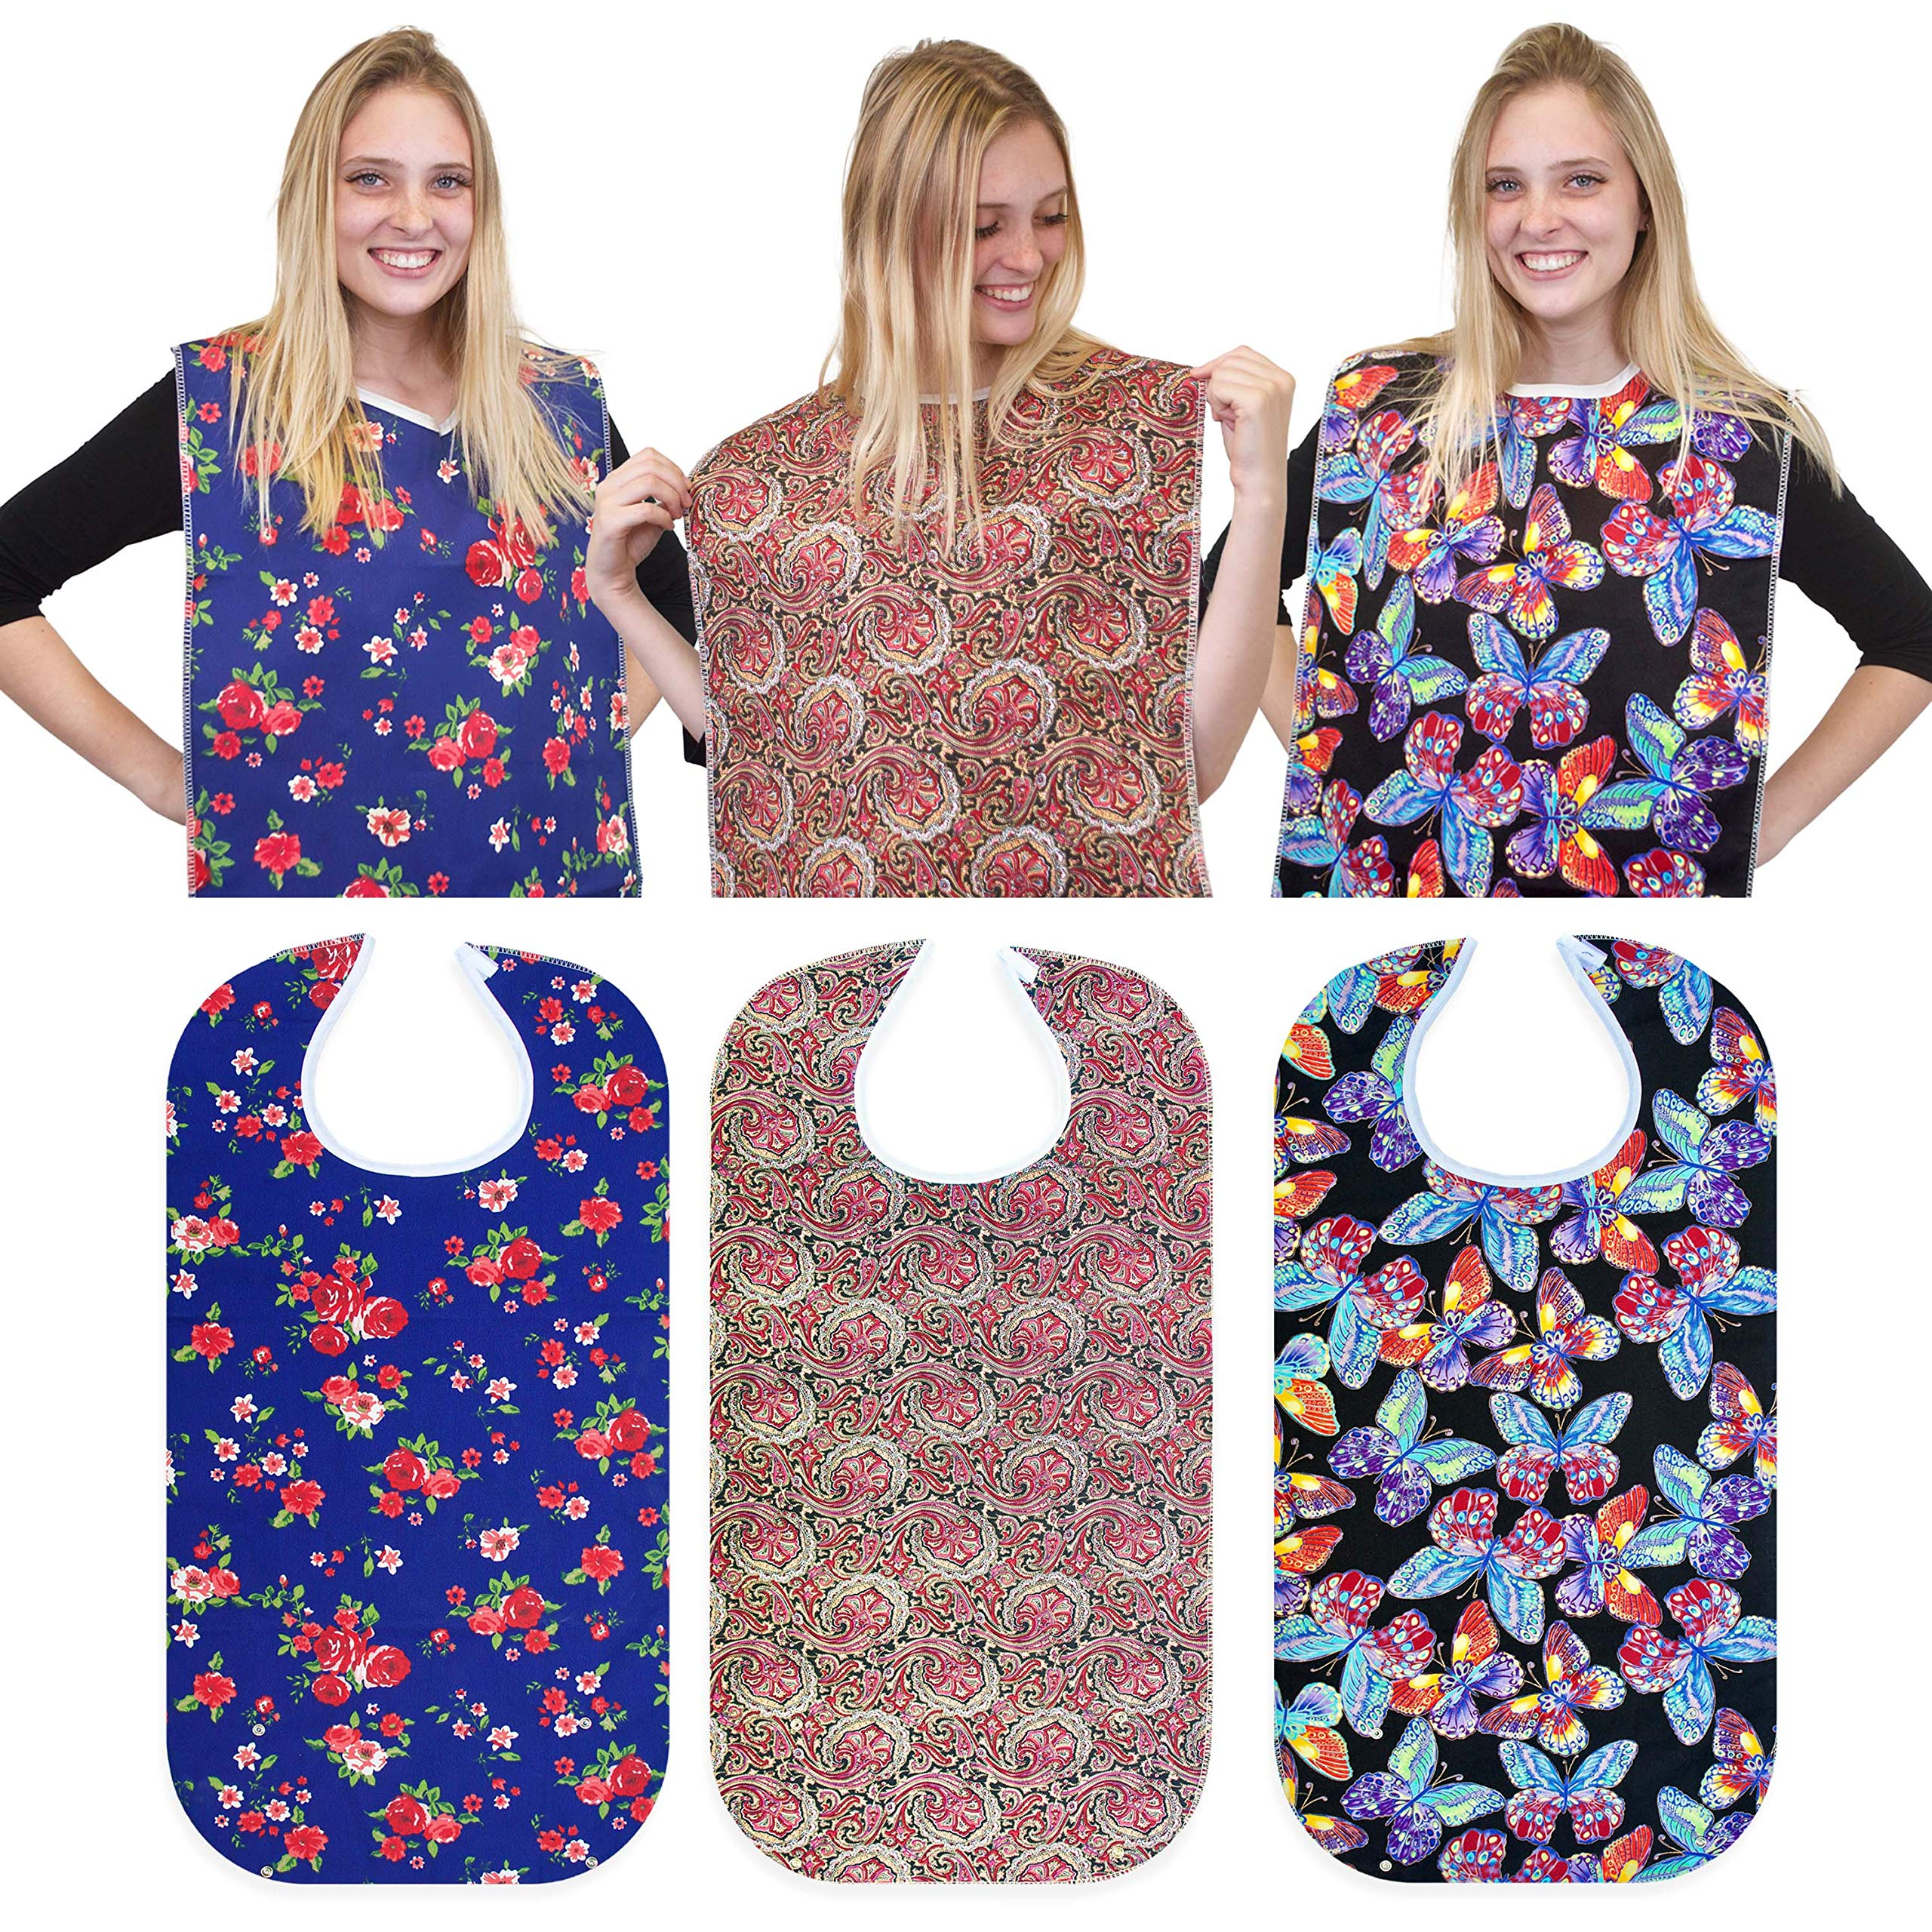 RMS 3 Pack Adult Bib Washable Reusable Waterproof Clothing Protector with Optional Crumb Catcher and Vinyl Backing 34''X18'' (Butterfly/Blue Rose/Heritage) by RMS Royal Medical Solutions, Inc.